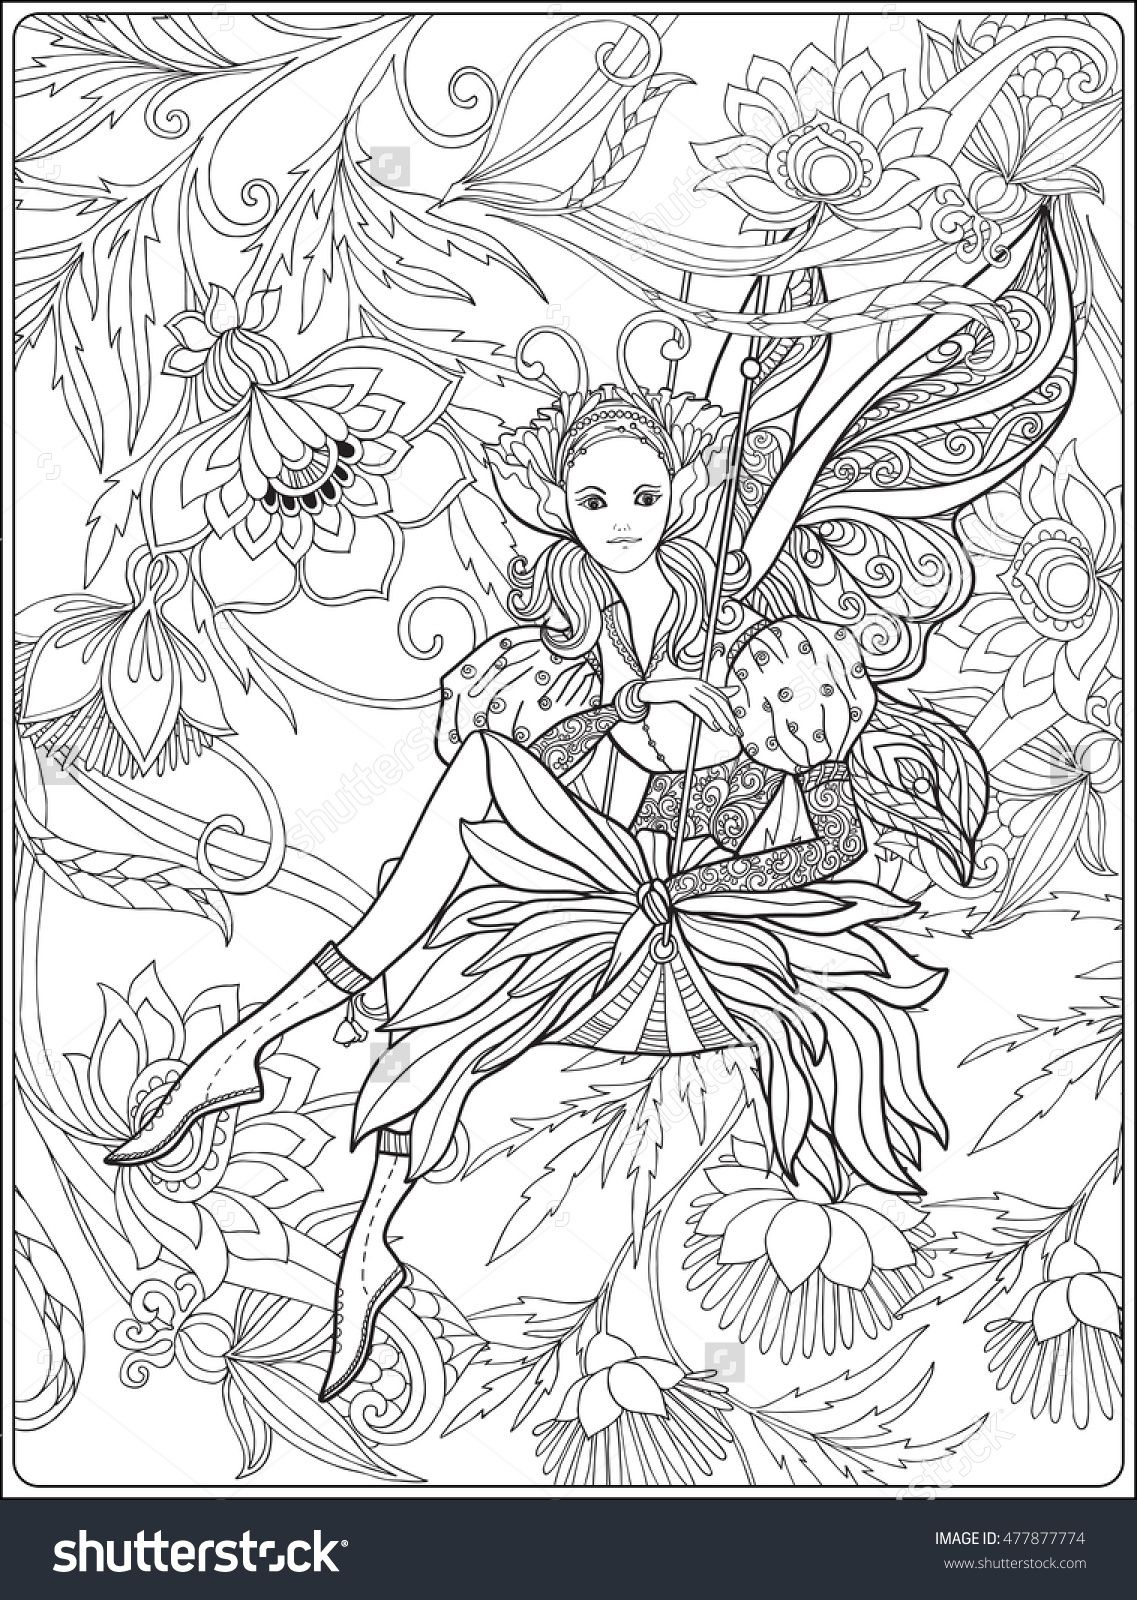 fairy with butterfly wings on swing on medieval floral background coloring page shutterstock. Black Bedroom Furniture Sets. Home Design Ideas